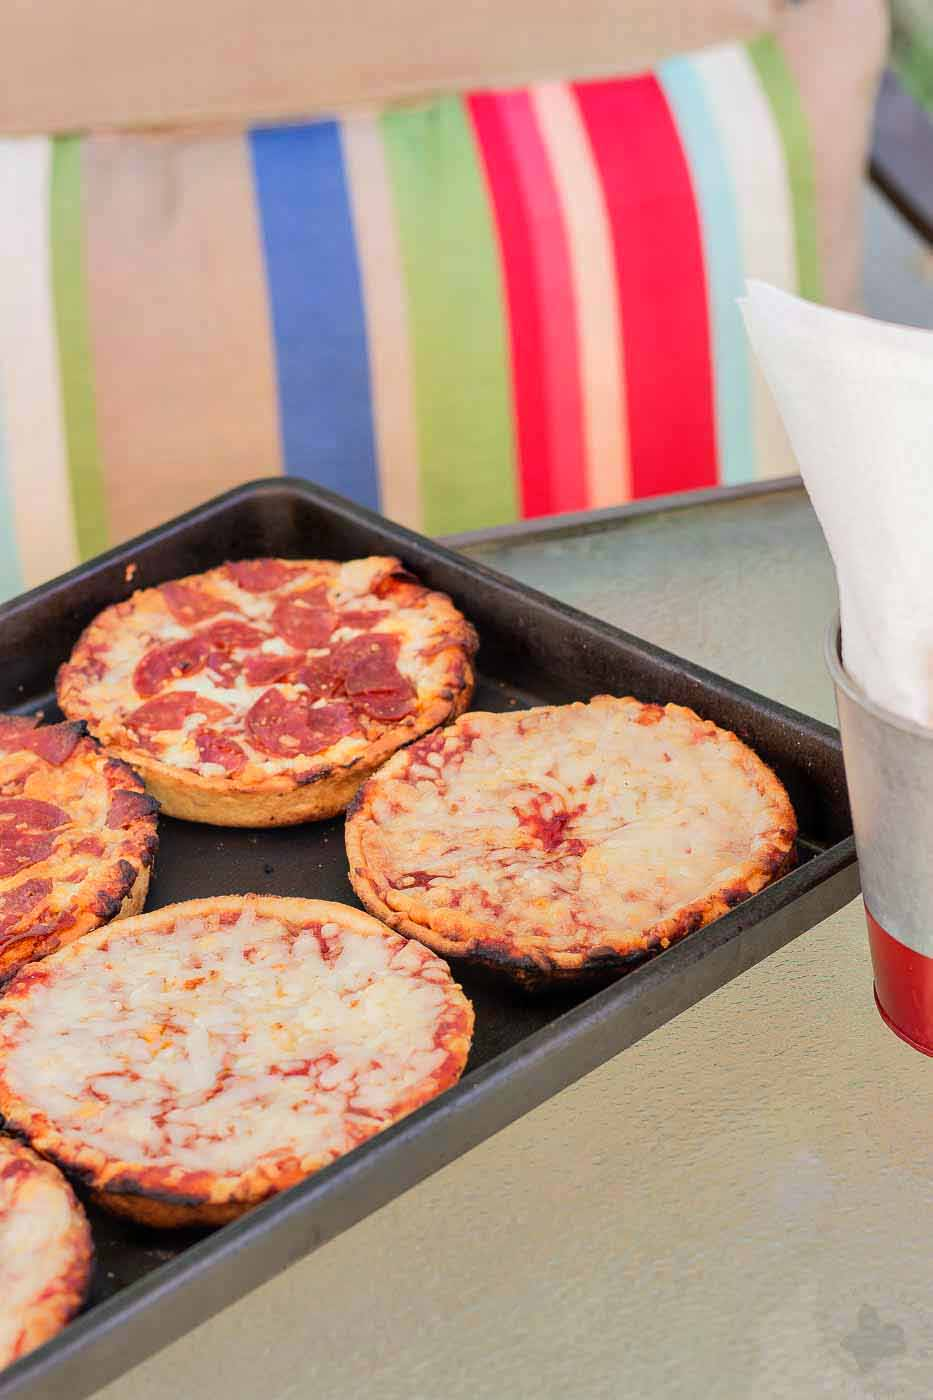 Summertime pizza parties have never been easier and simpler thanks to Easy grilled pizzas with Red Baron Singles Deep Dish pizzas. Throw a few on the grill and you've got yourself a pizza party faster than you can call the delivery man. | Strawberry Blondie Kitchen